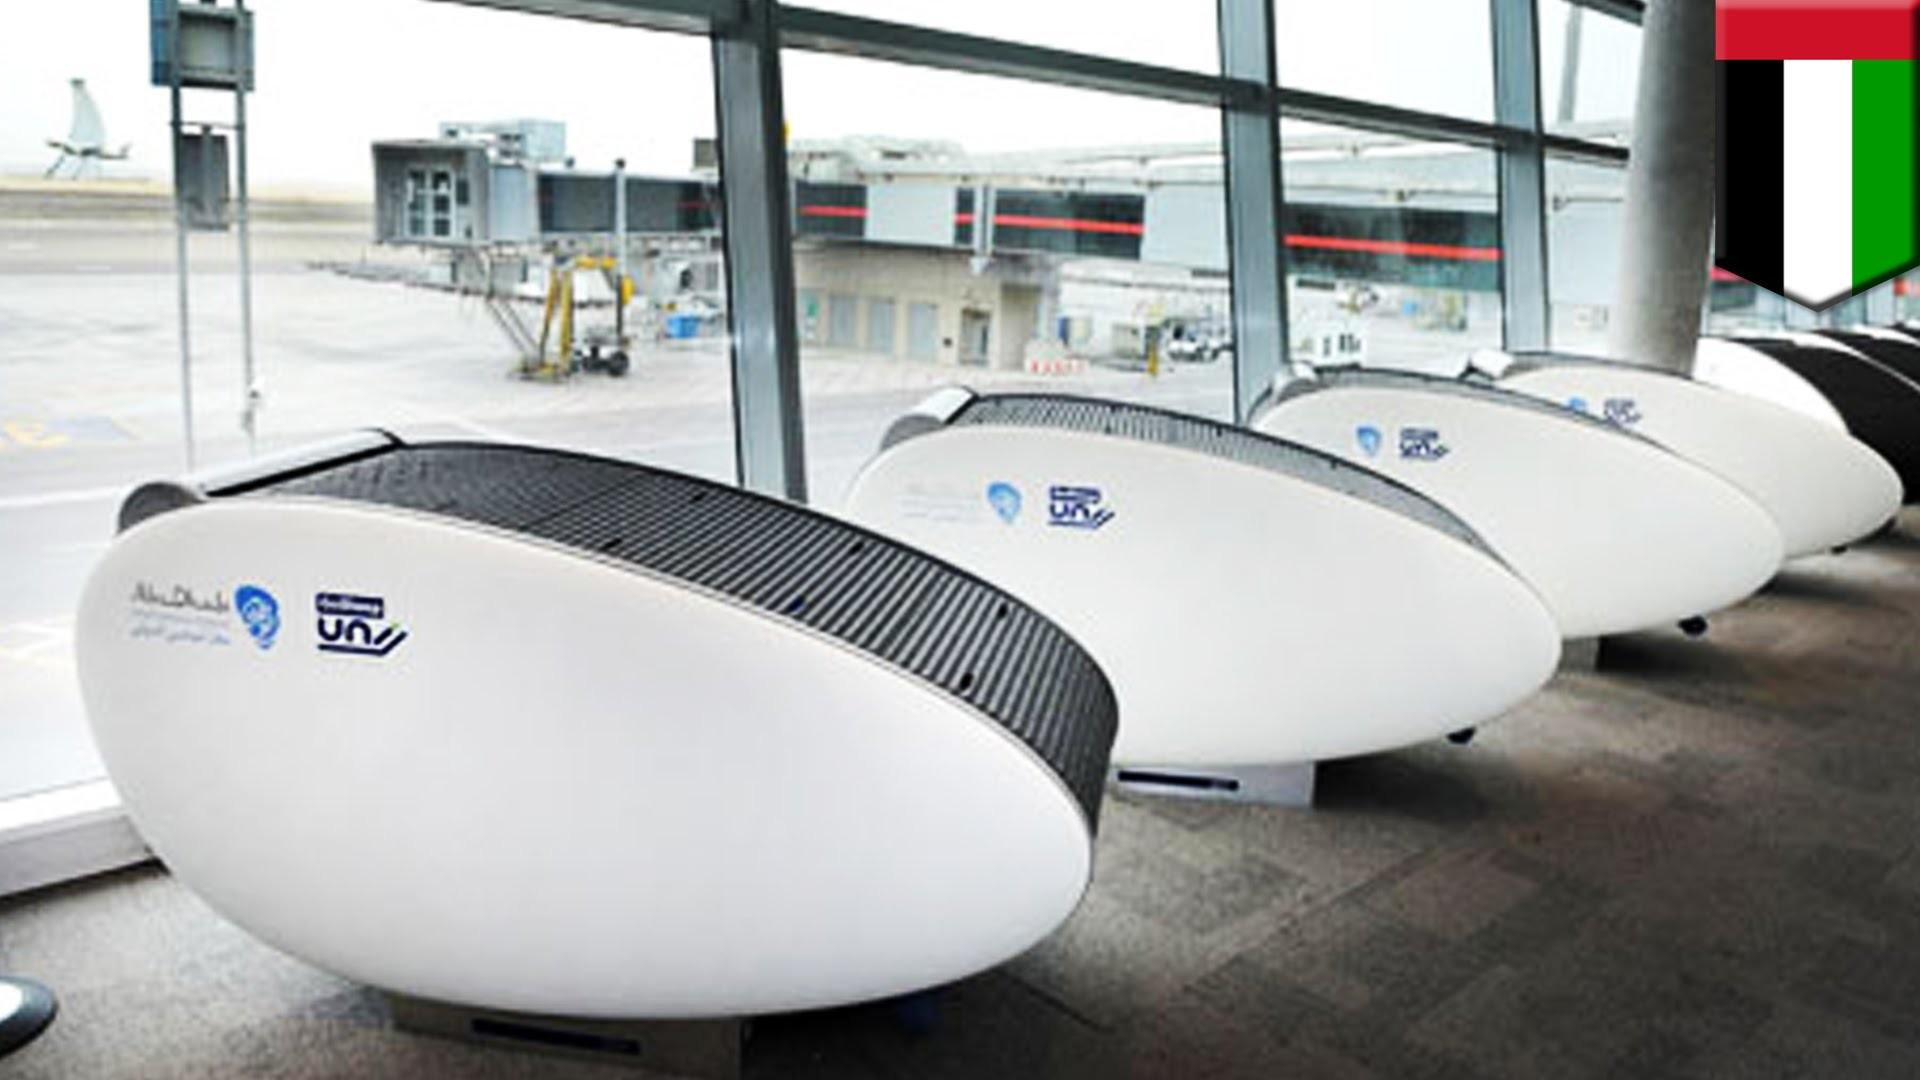 Sleeping Pods Airports Elsewhere Allow Get